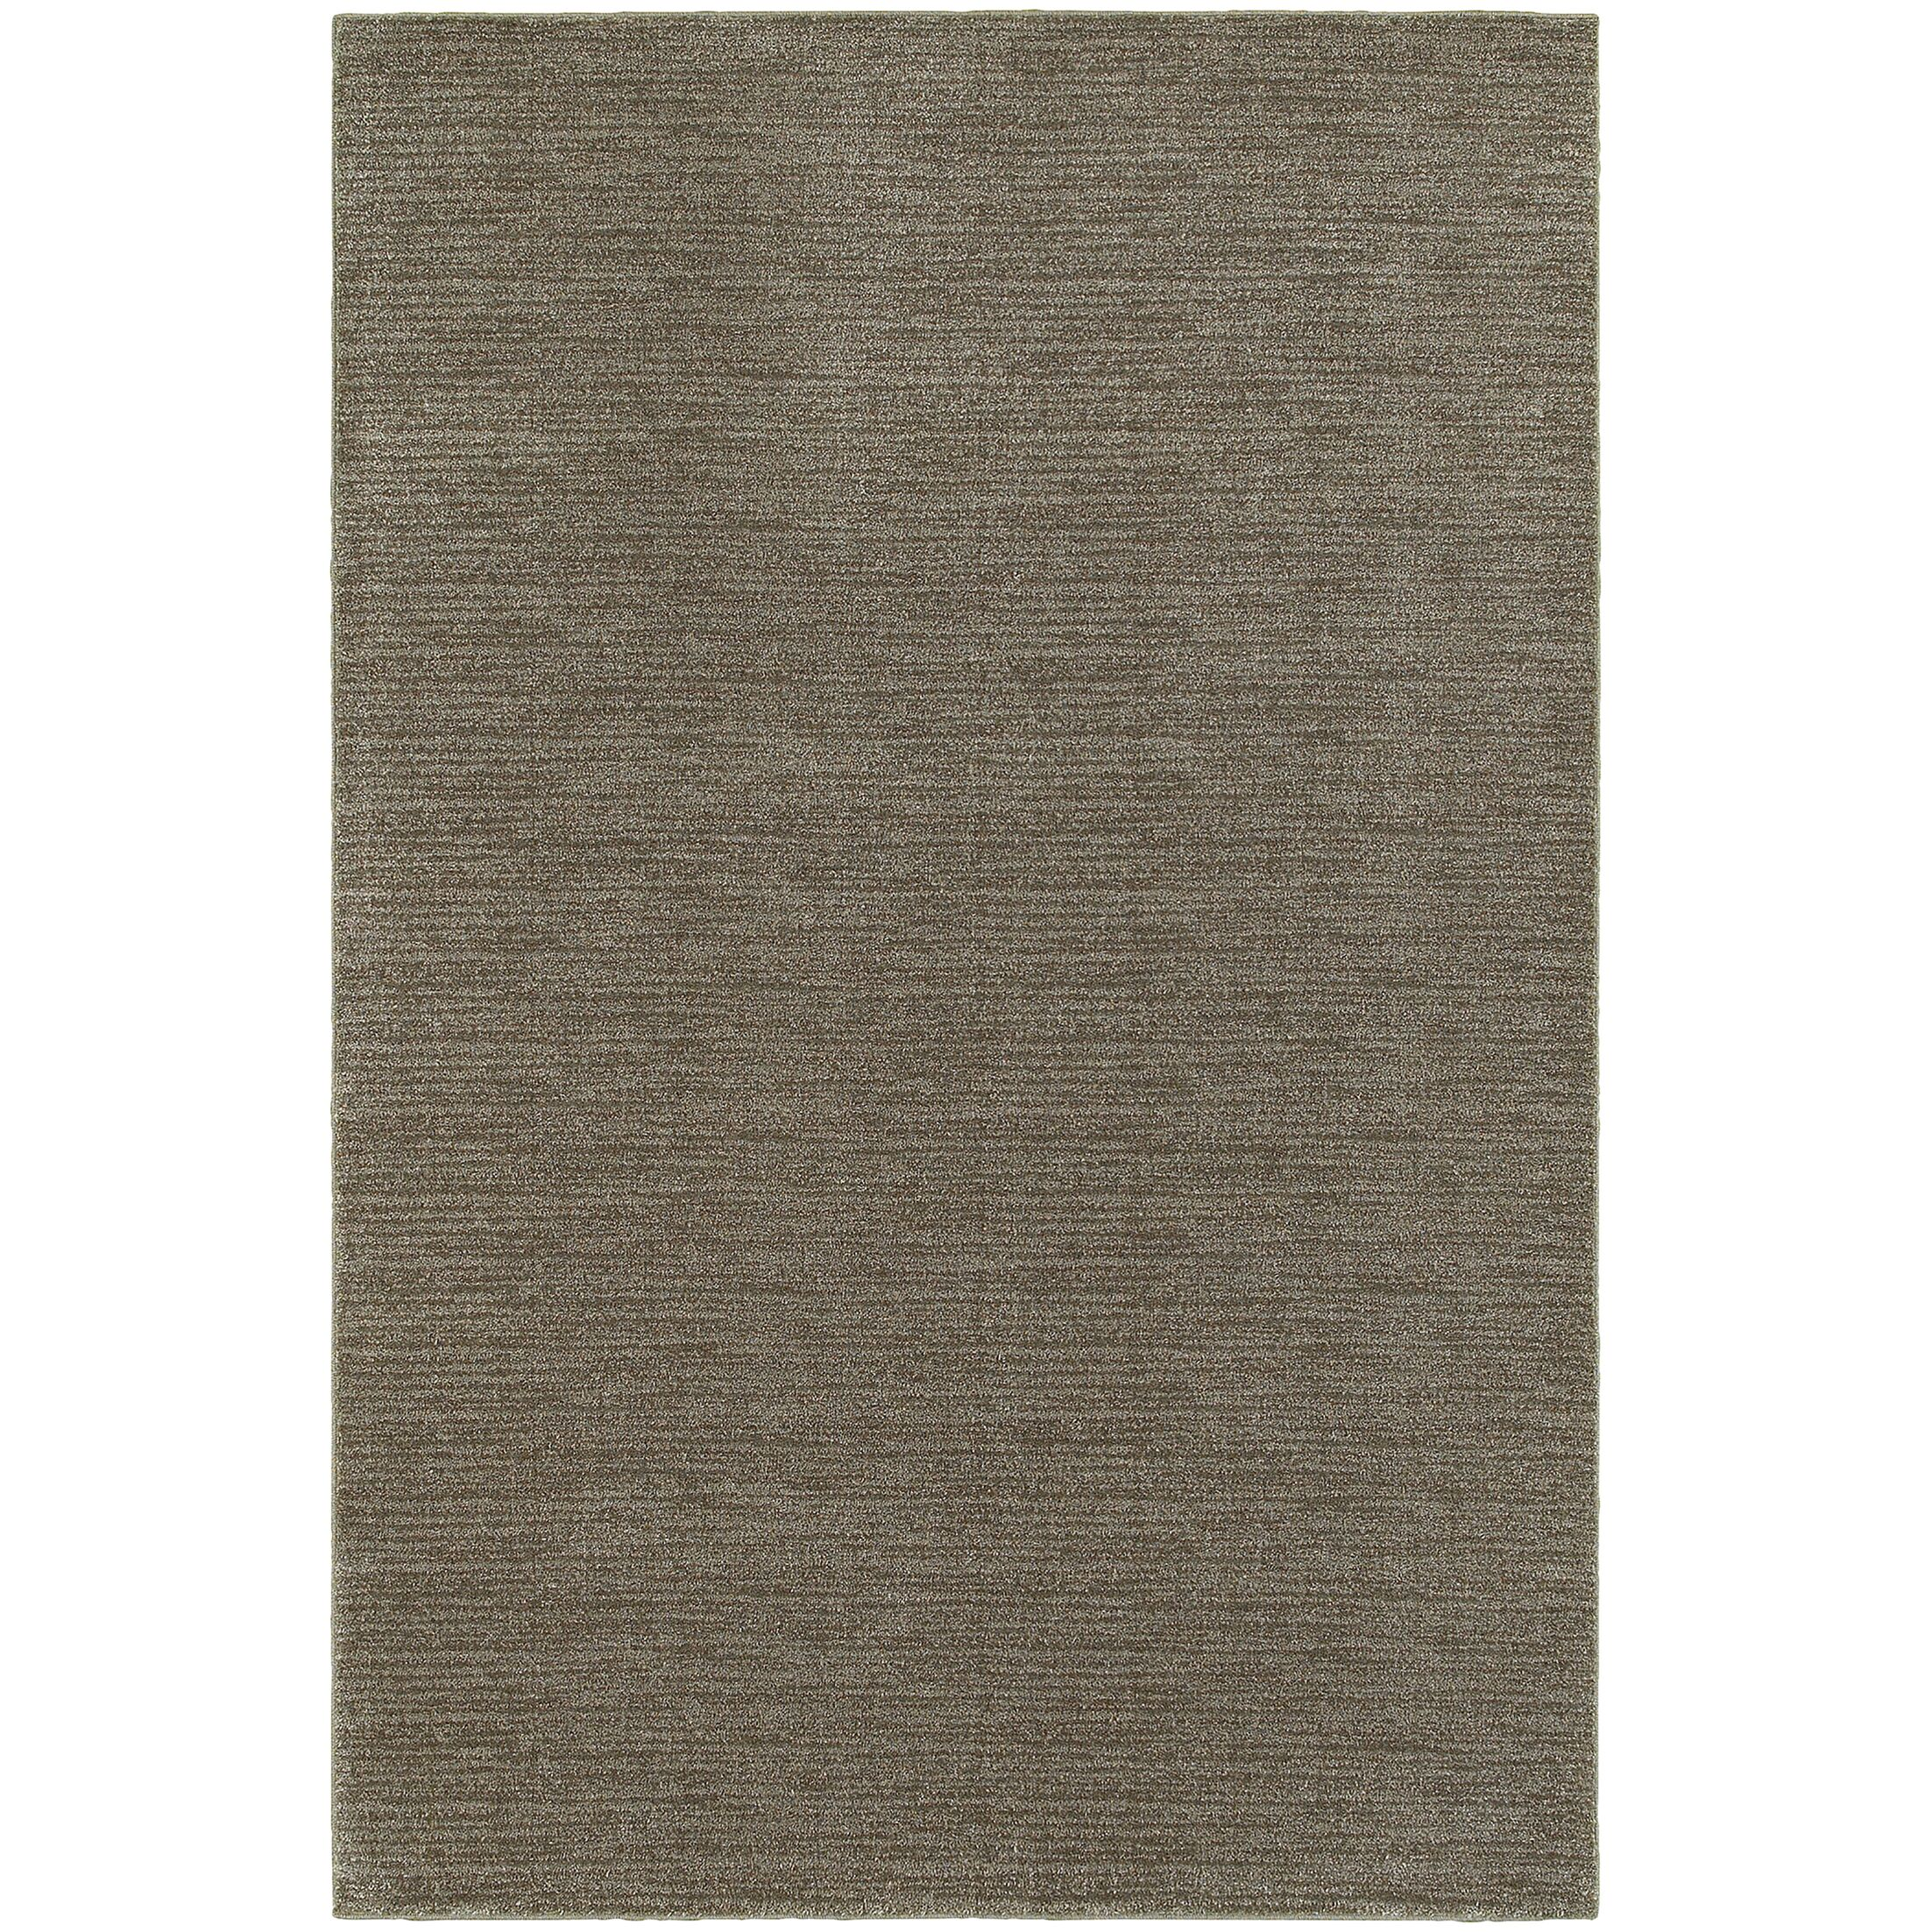 Yadira Gray/Brown Area Rug Rug Size: Rectangle 6'7